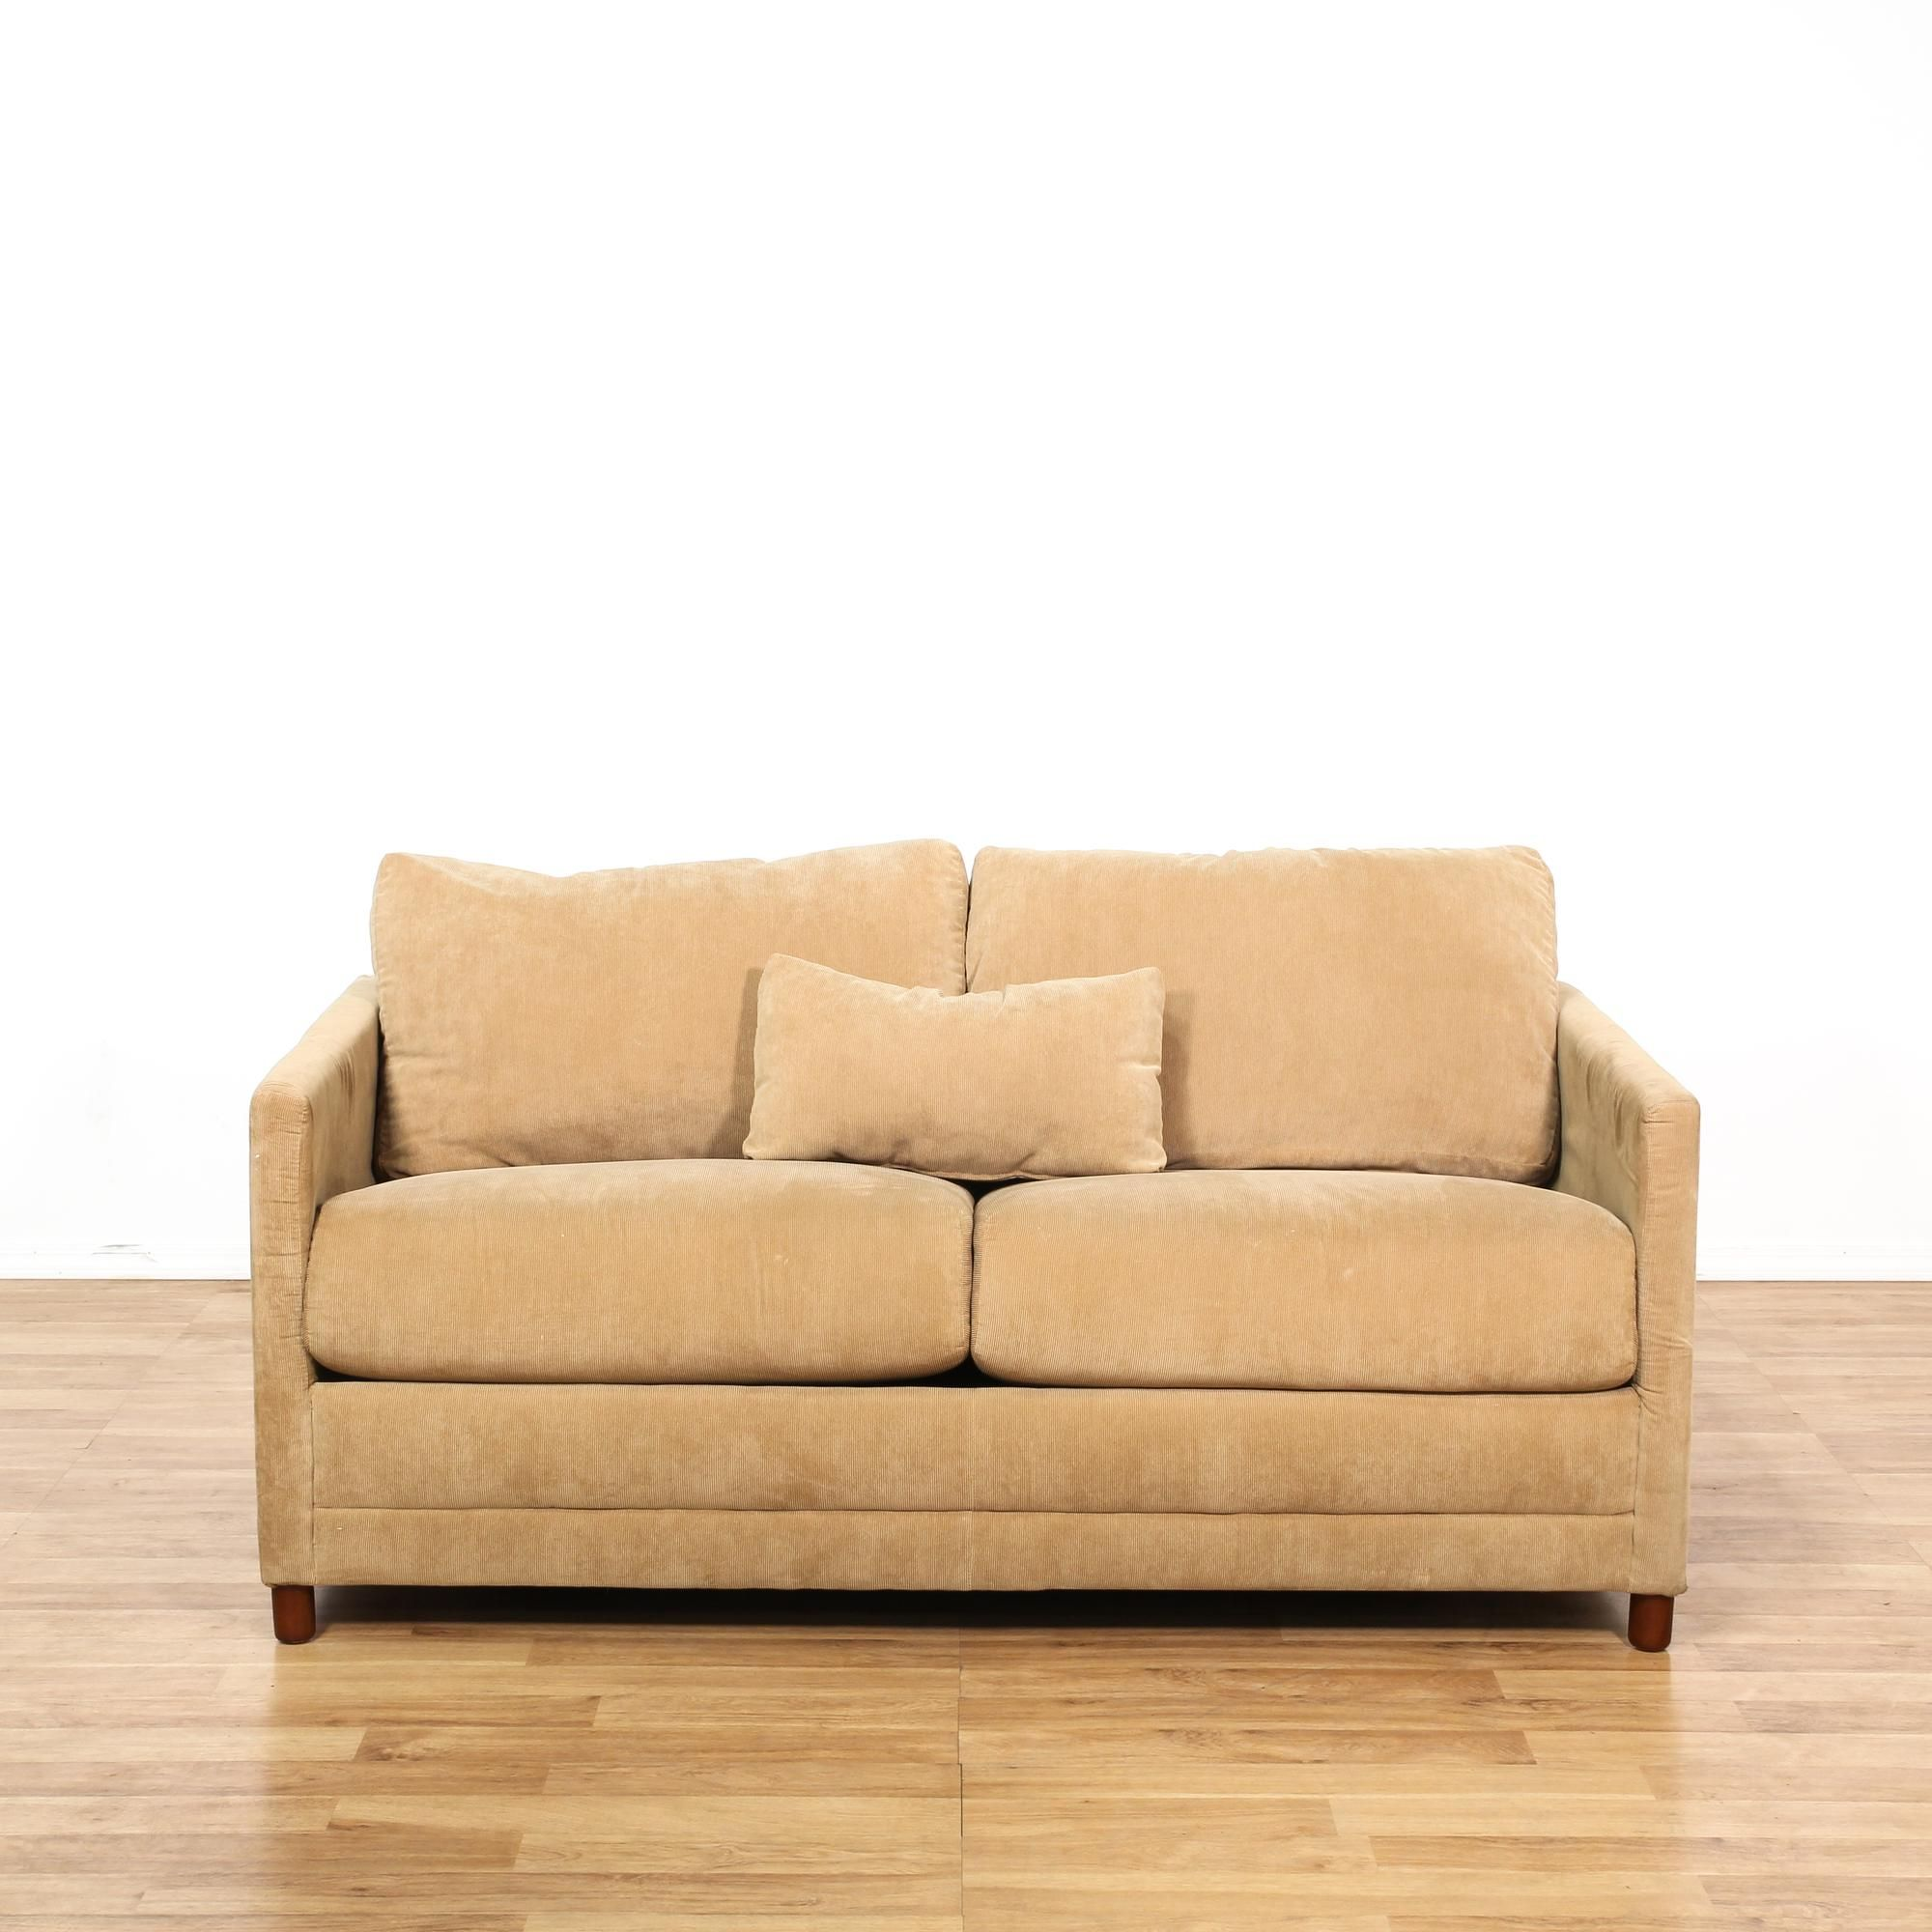 twist istikbal out bed size sofa htm full loveseat our fold p the by convertible